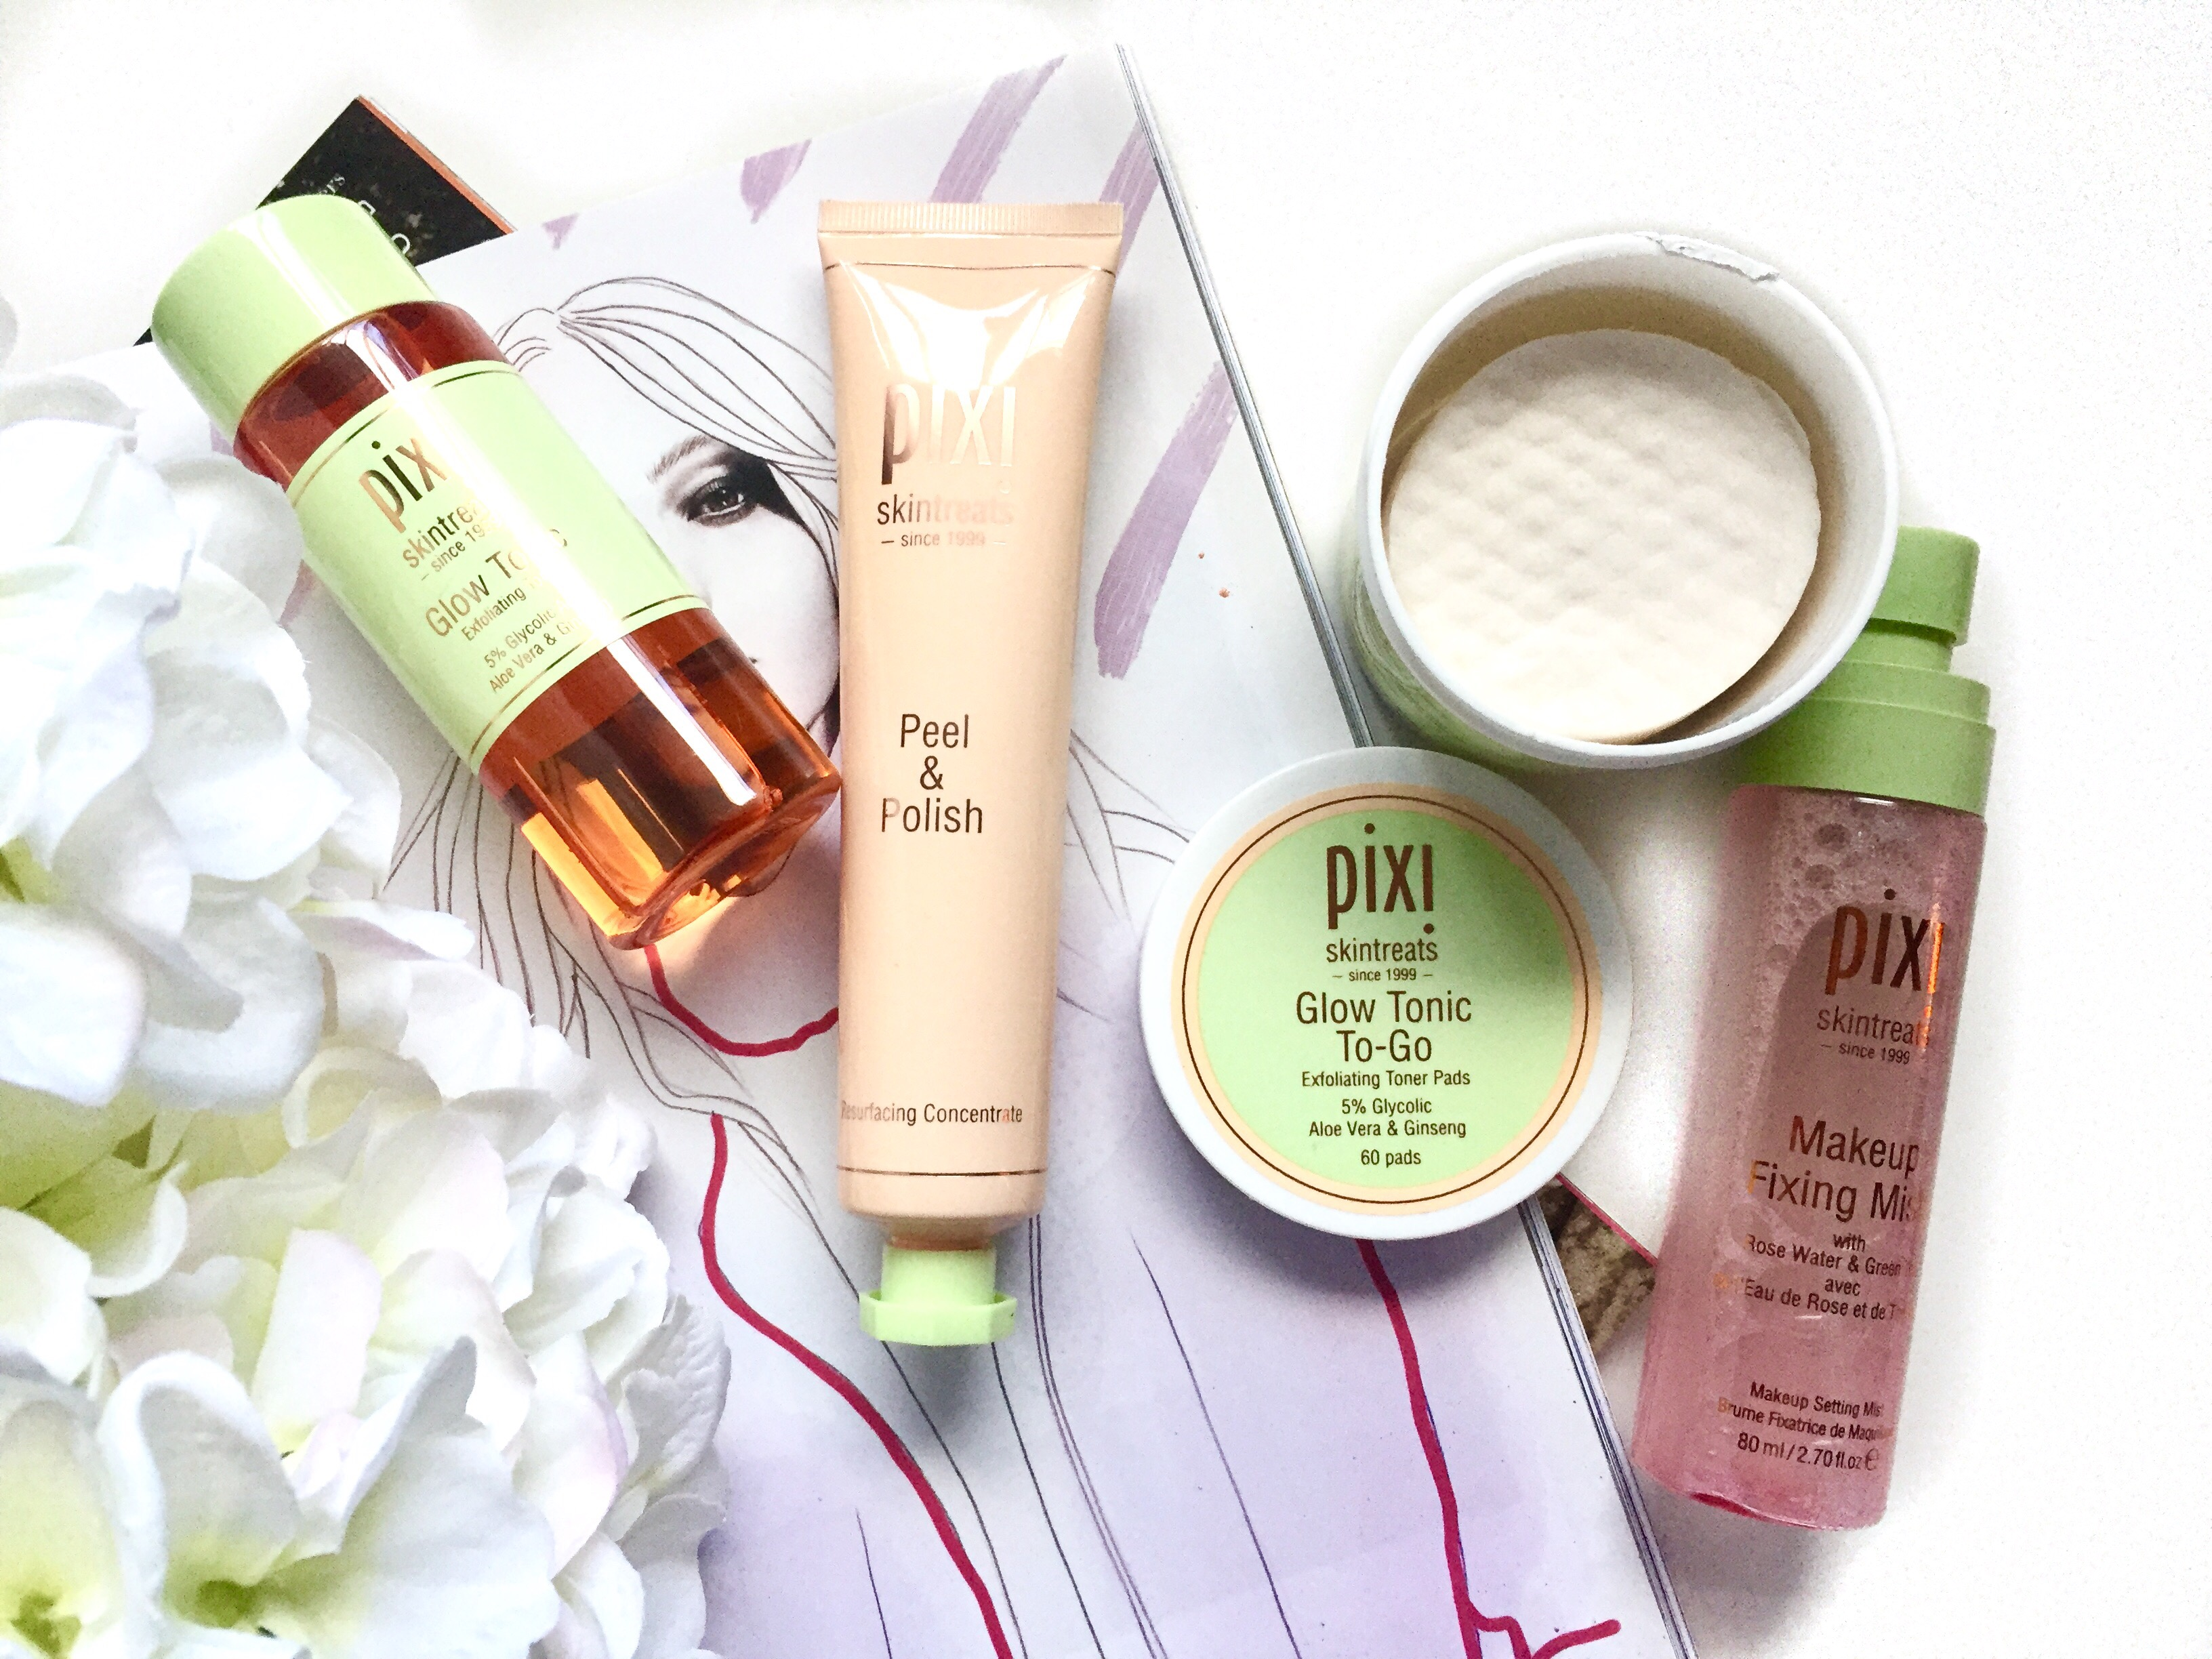 Brand Focus – Pixi by Petra